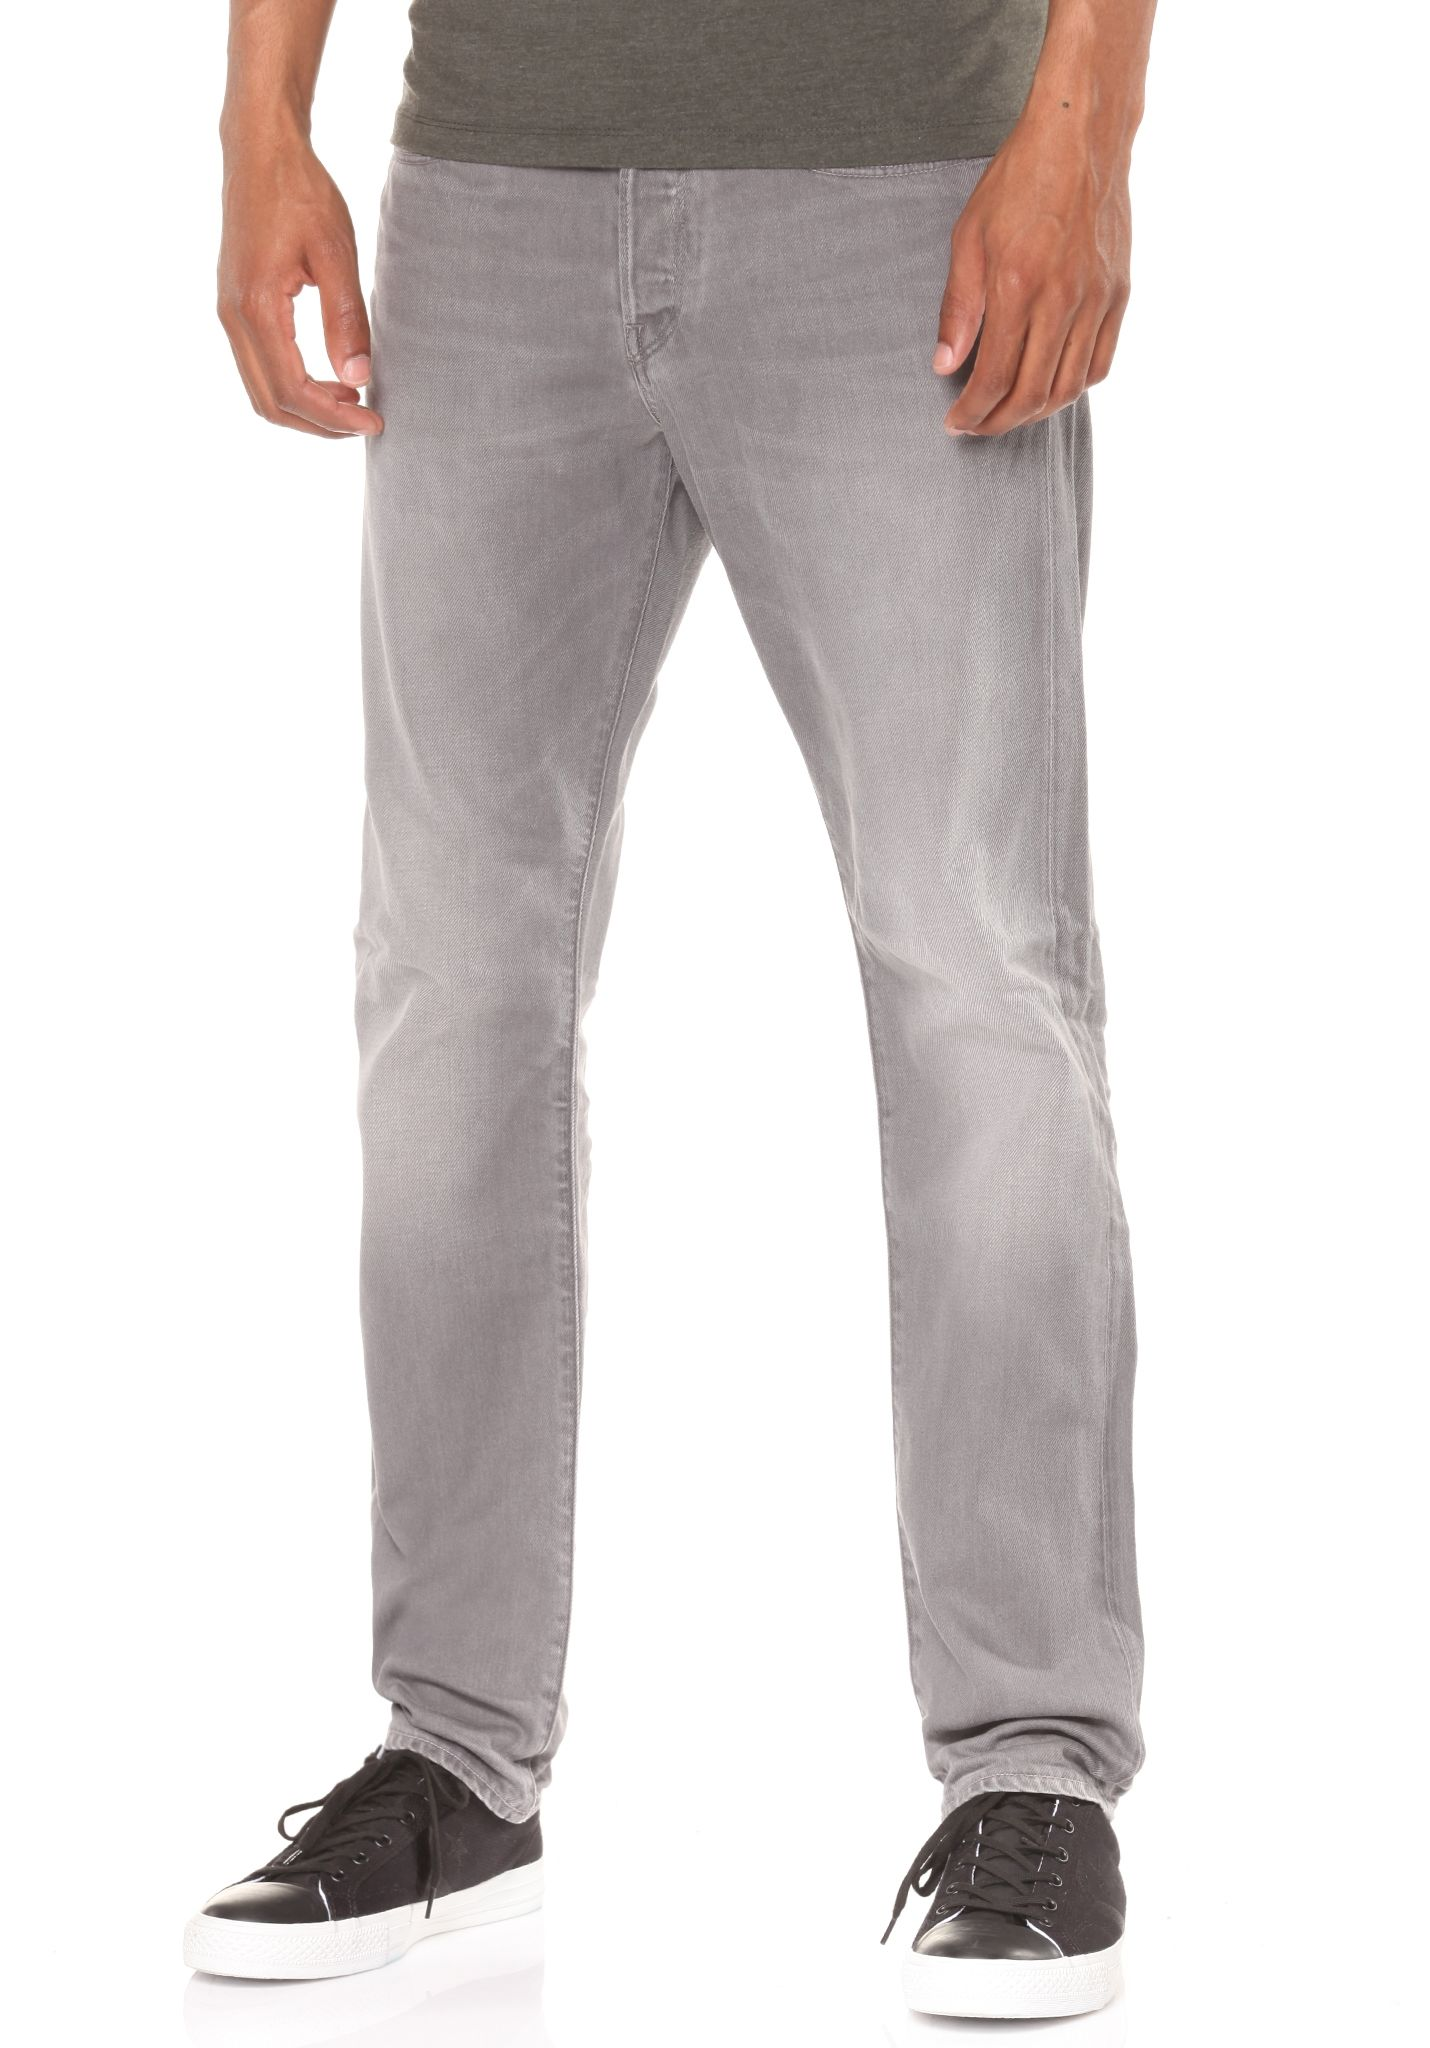 6faa2bb4 G-STAR 3301 Tapered Dust - Denim Jeans for Men - Grey - Planet Sports